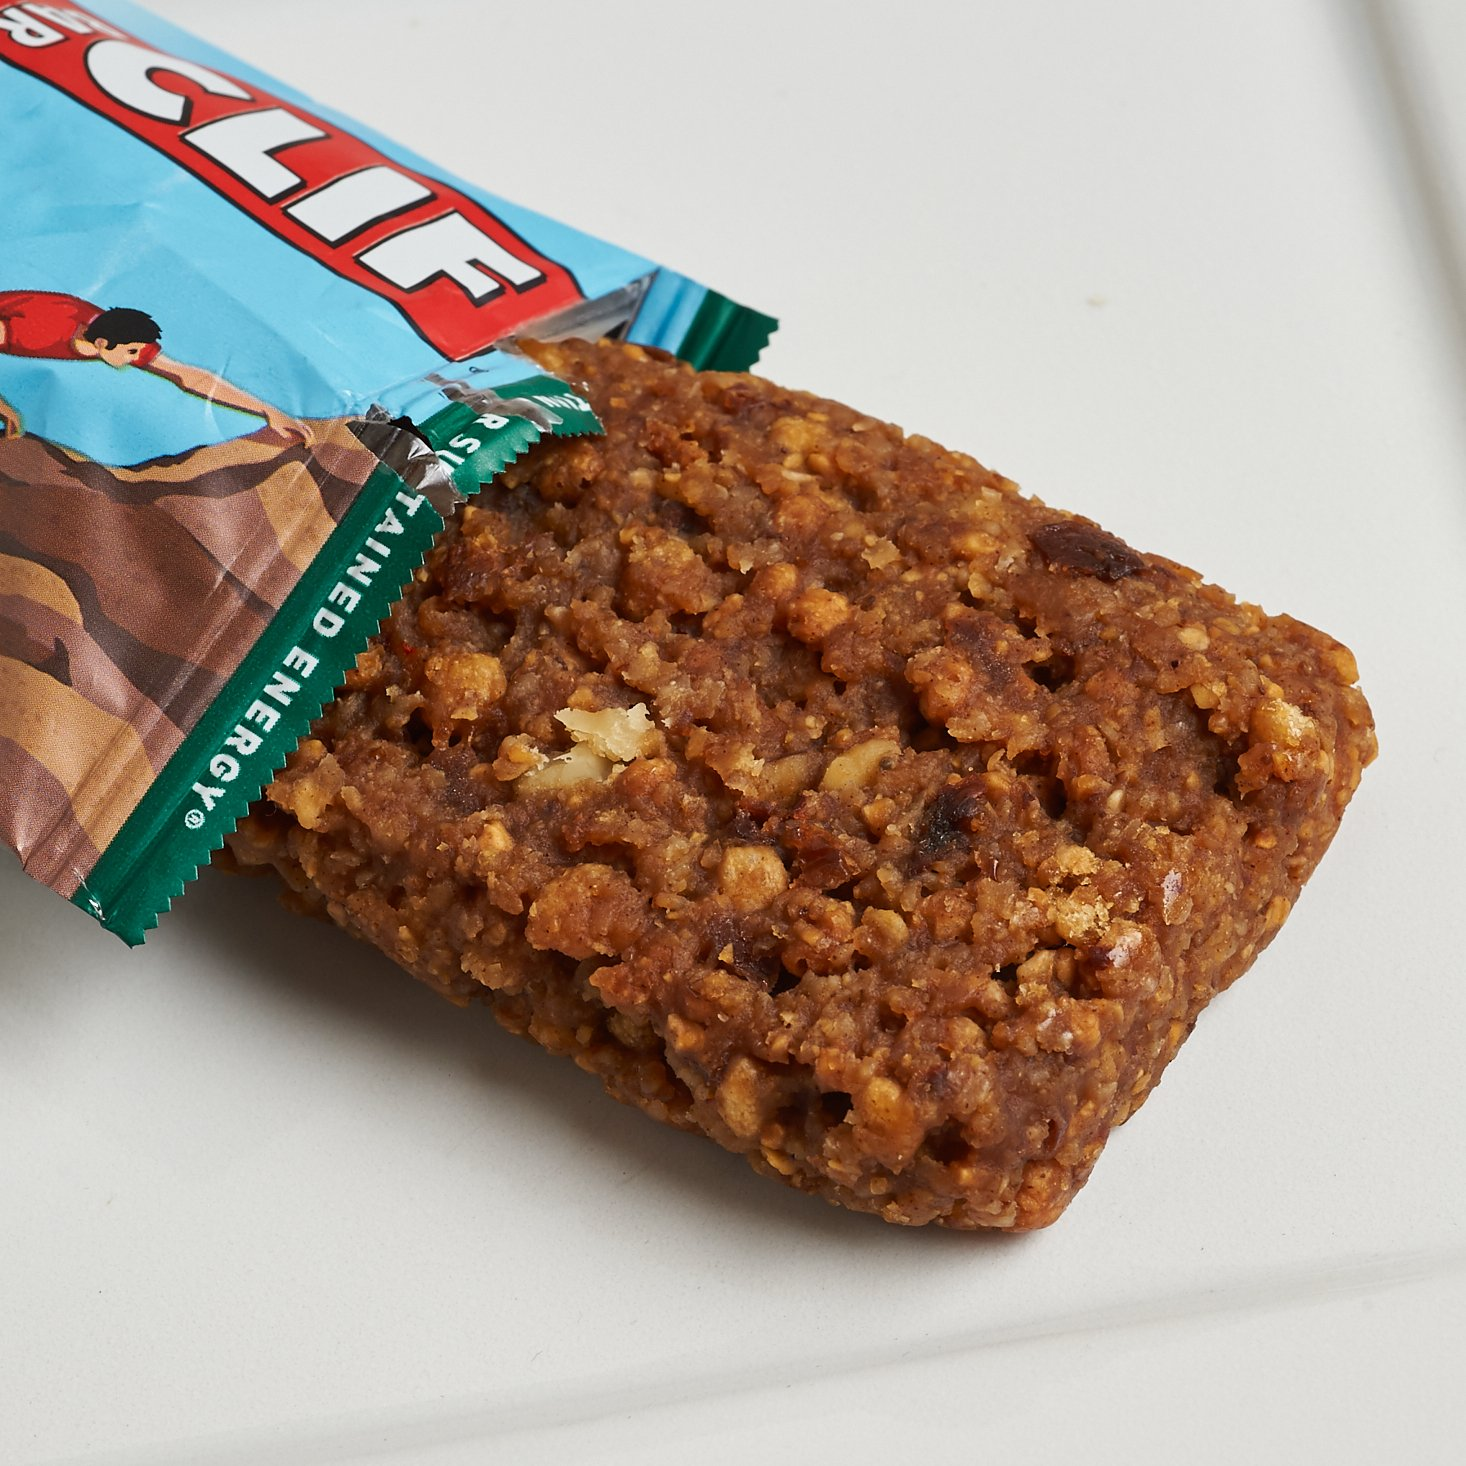 Oatmeal Raisin Walnut Clif Bar coming out of package onto plate